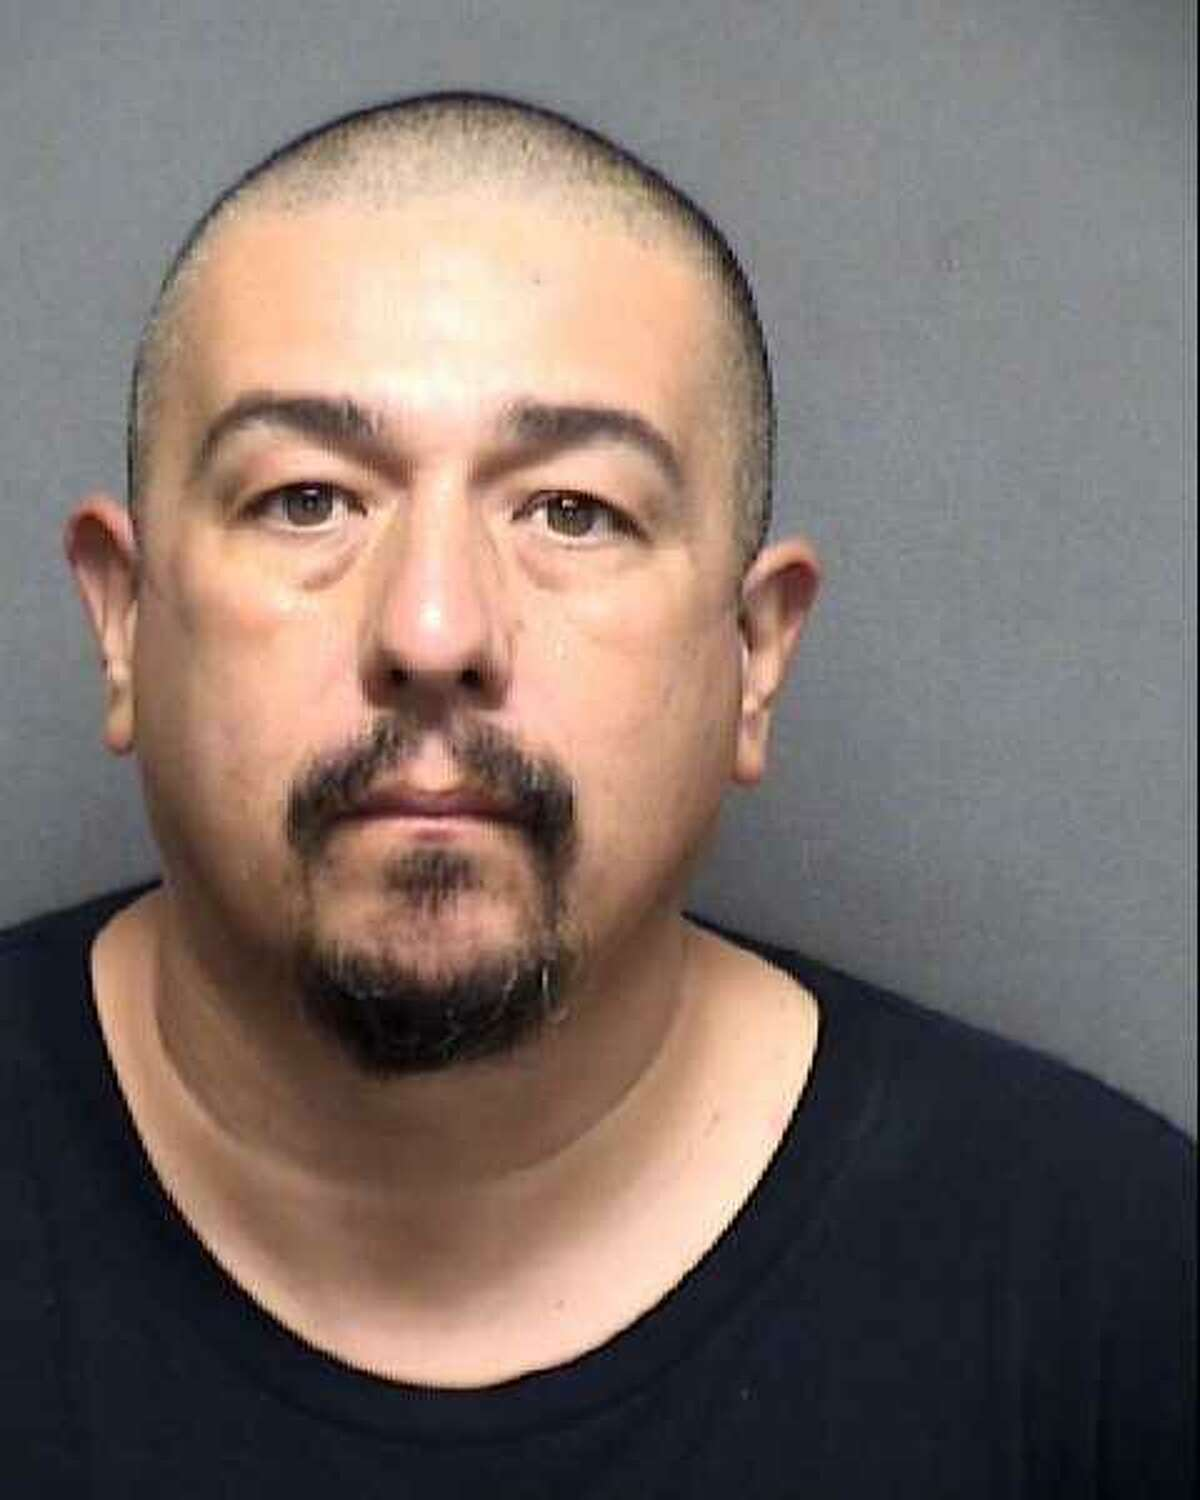 Mark Andrew Seemann, 45, is charged with intoxication assault of a peace officer with bail set at $100,000, according to the Bexar County Sheriff's Office.